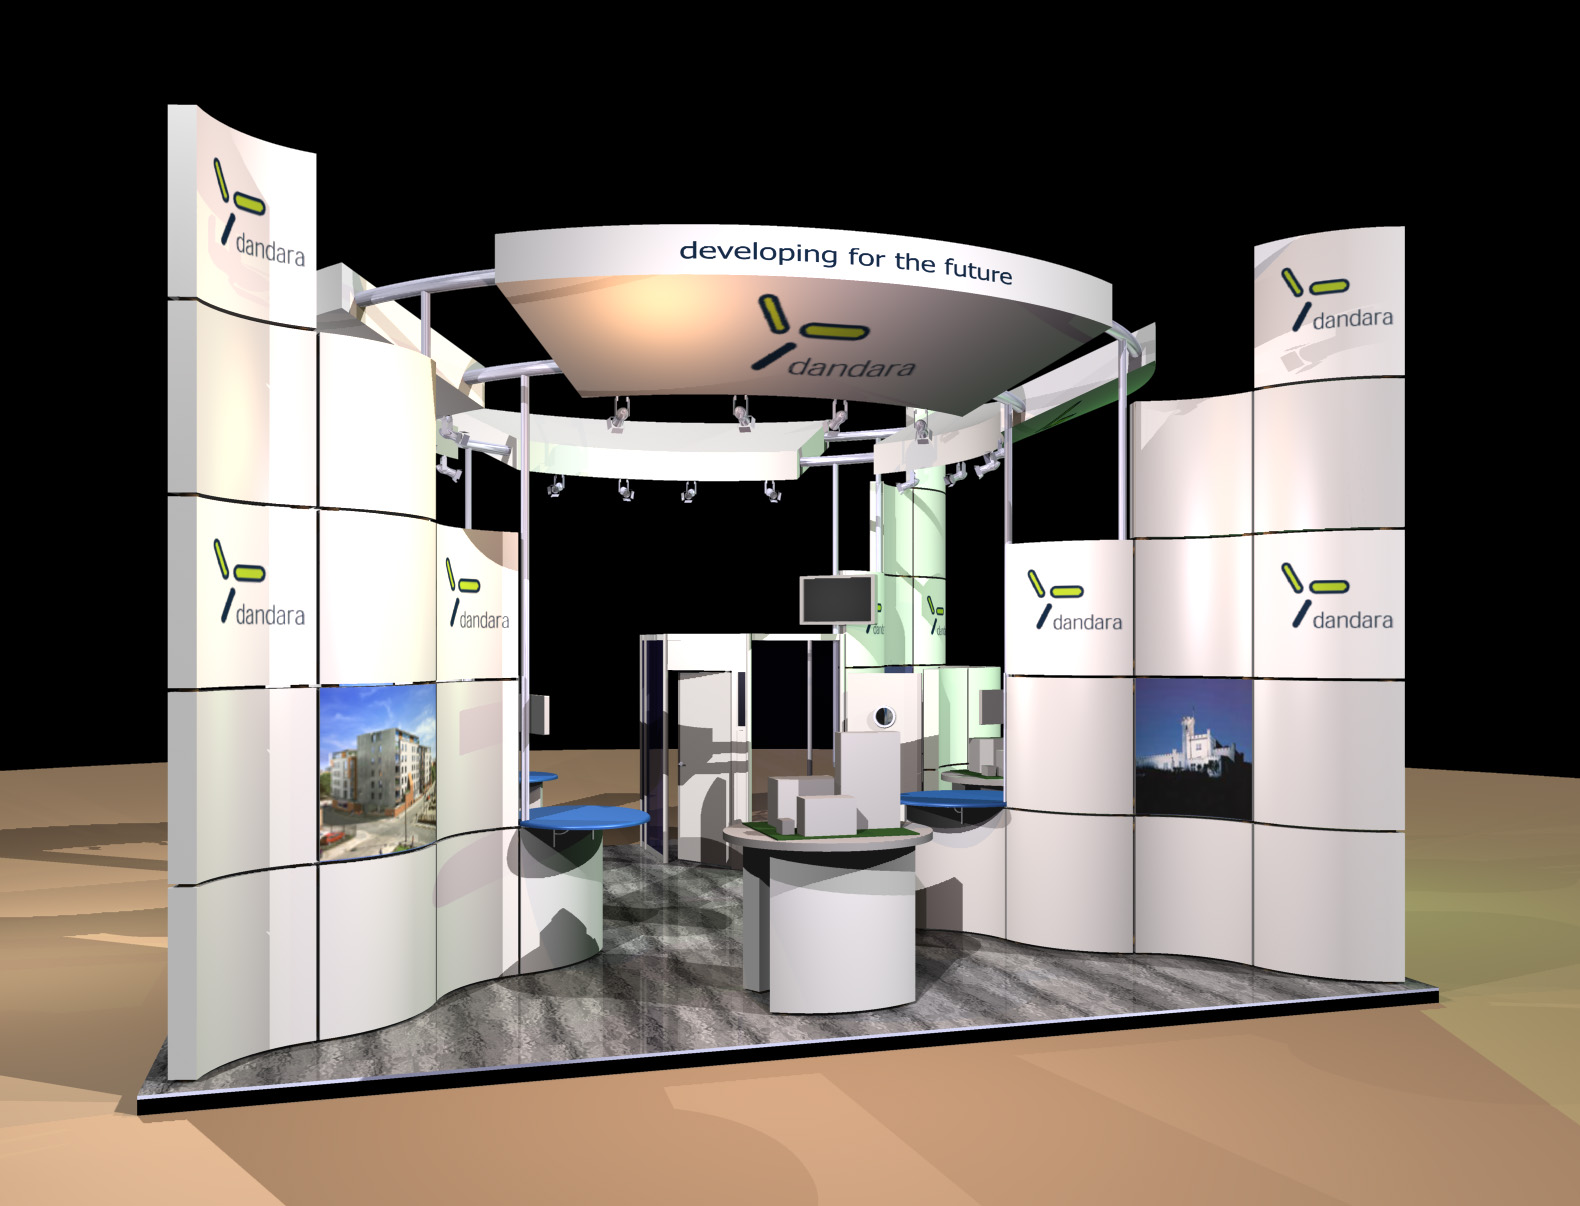 Marketing Exhibition Stand Goals : Exhibition booth design ideas environment